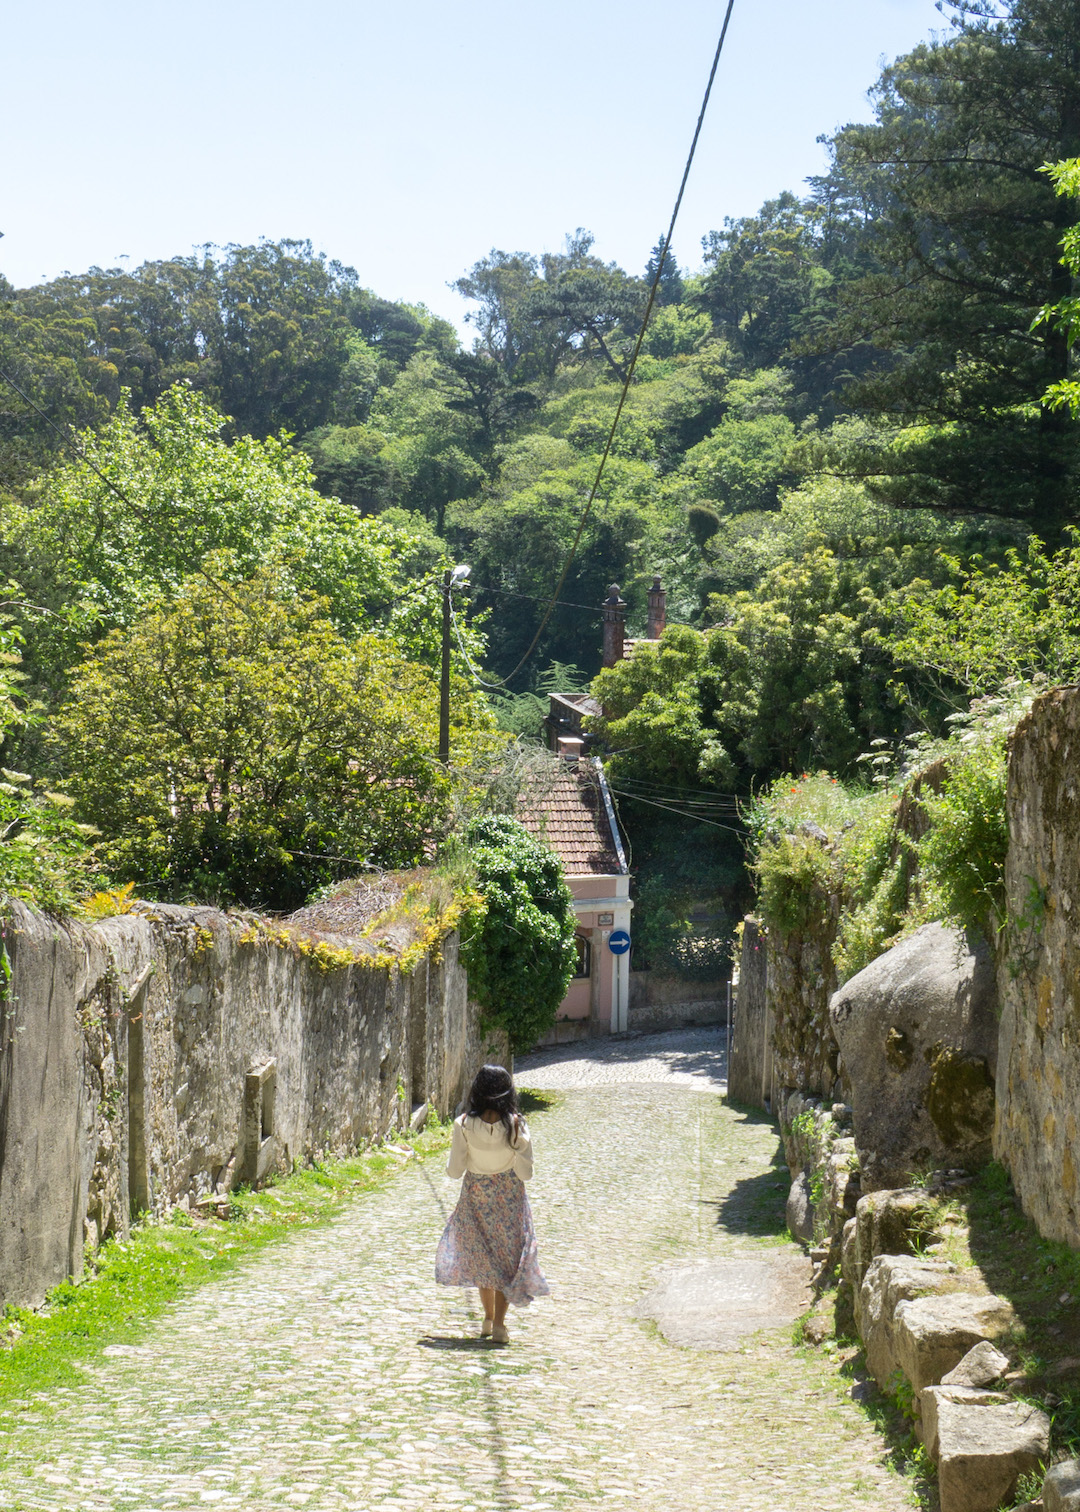 Walking on the slopes of Sintra